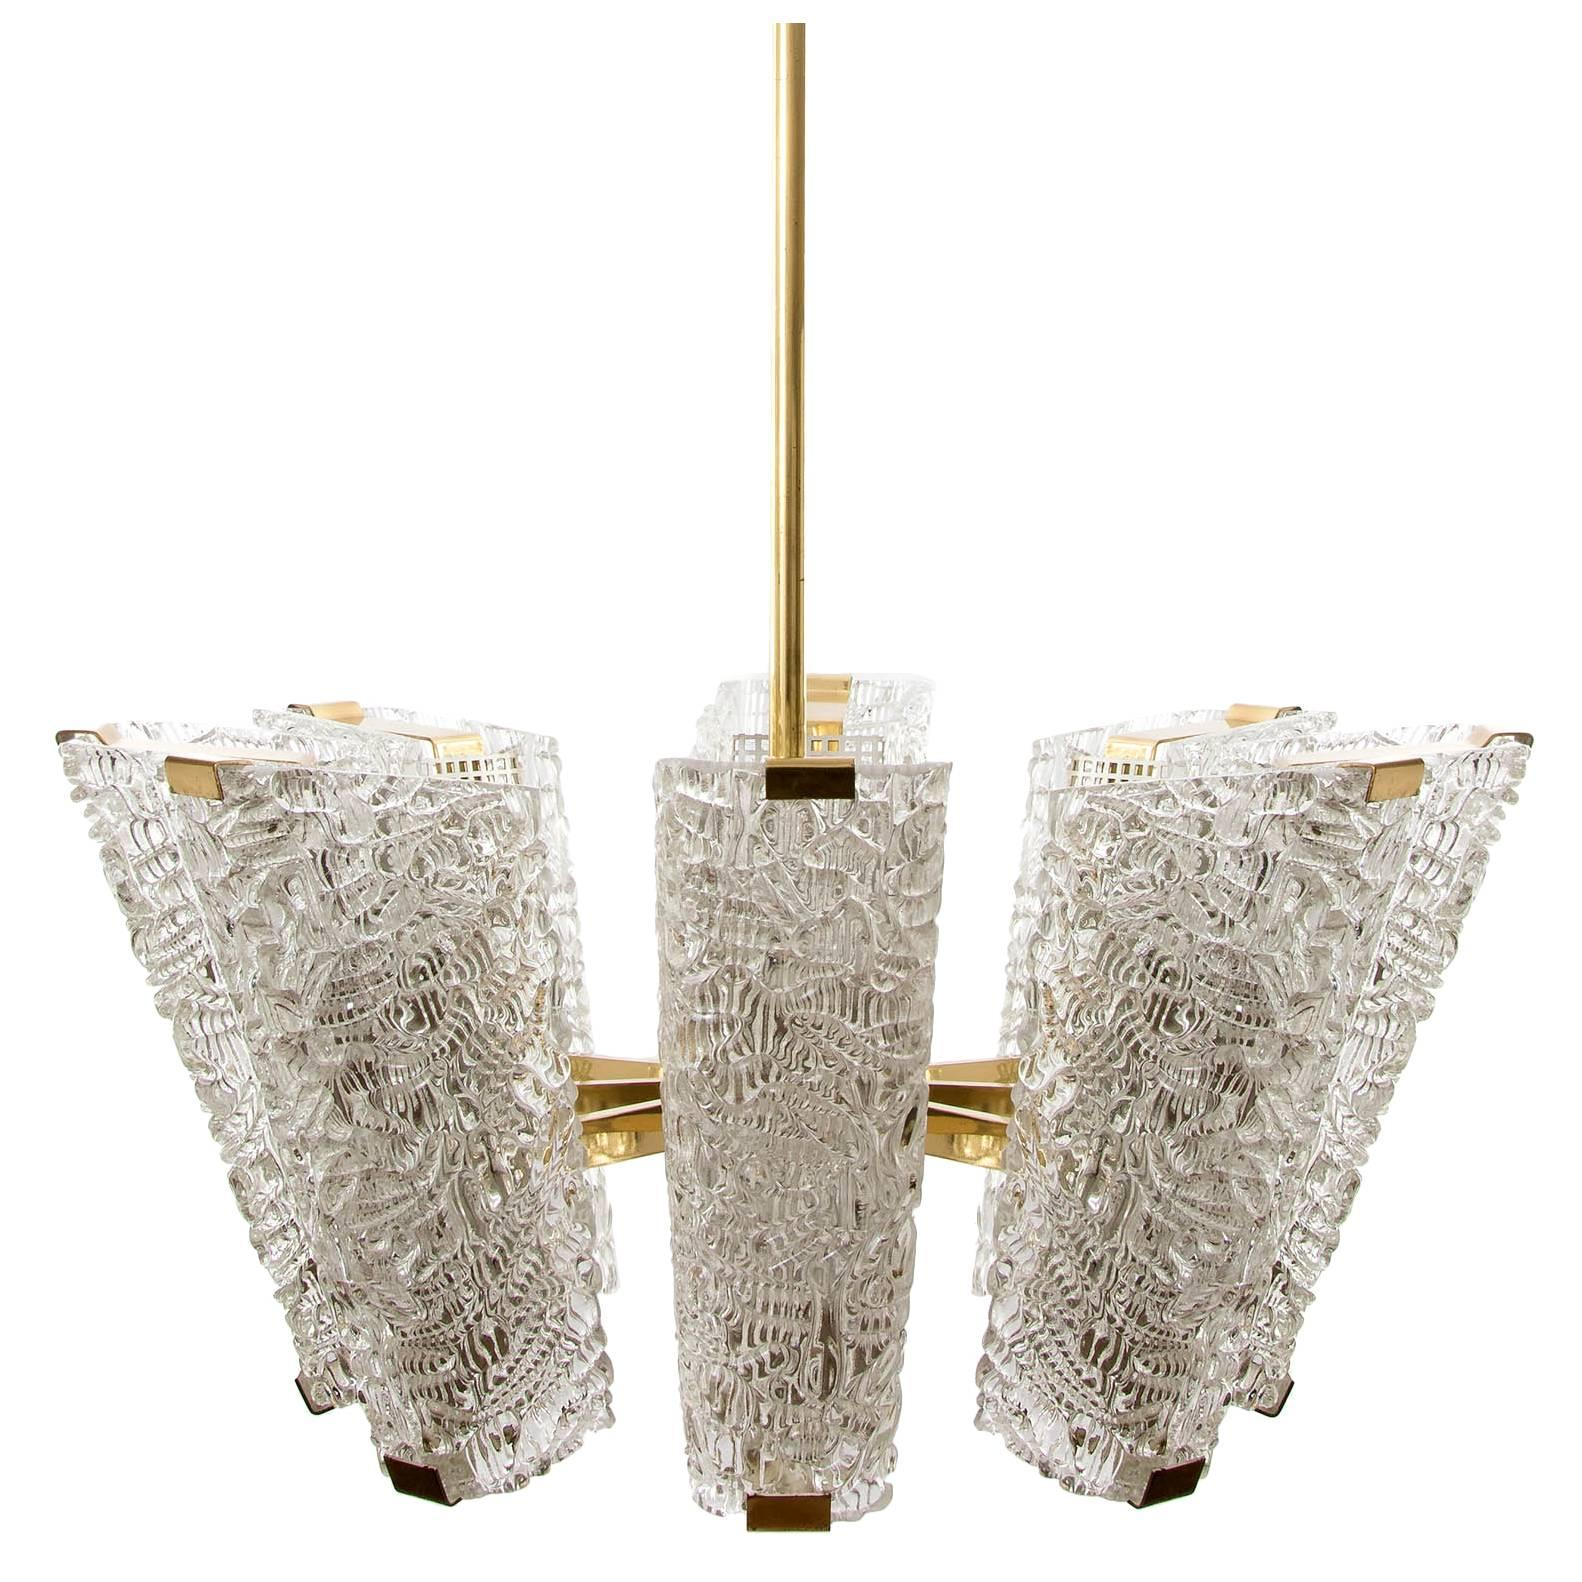 Large Kalmar Chandelier, Brass and Textured Glass, 1950s, 1 of 4